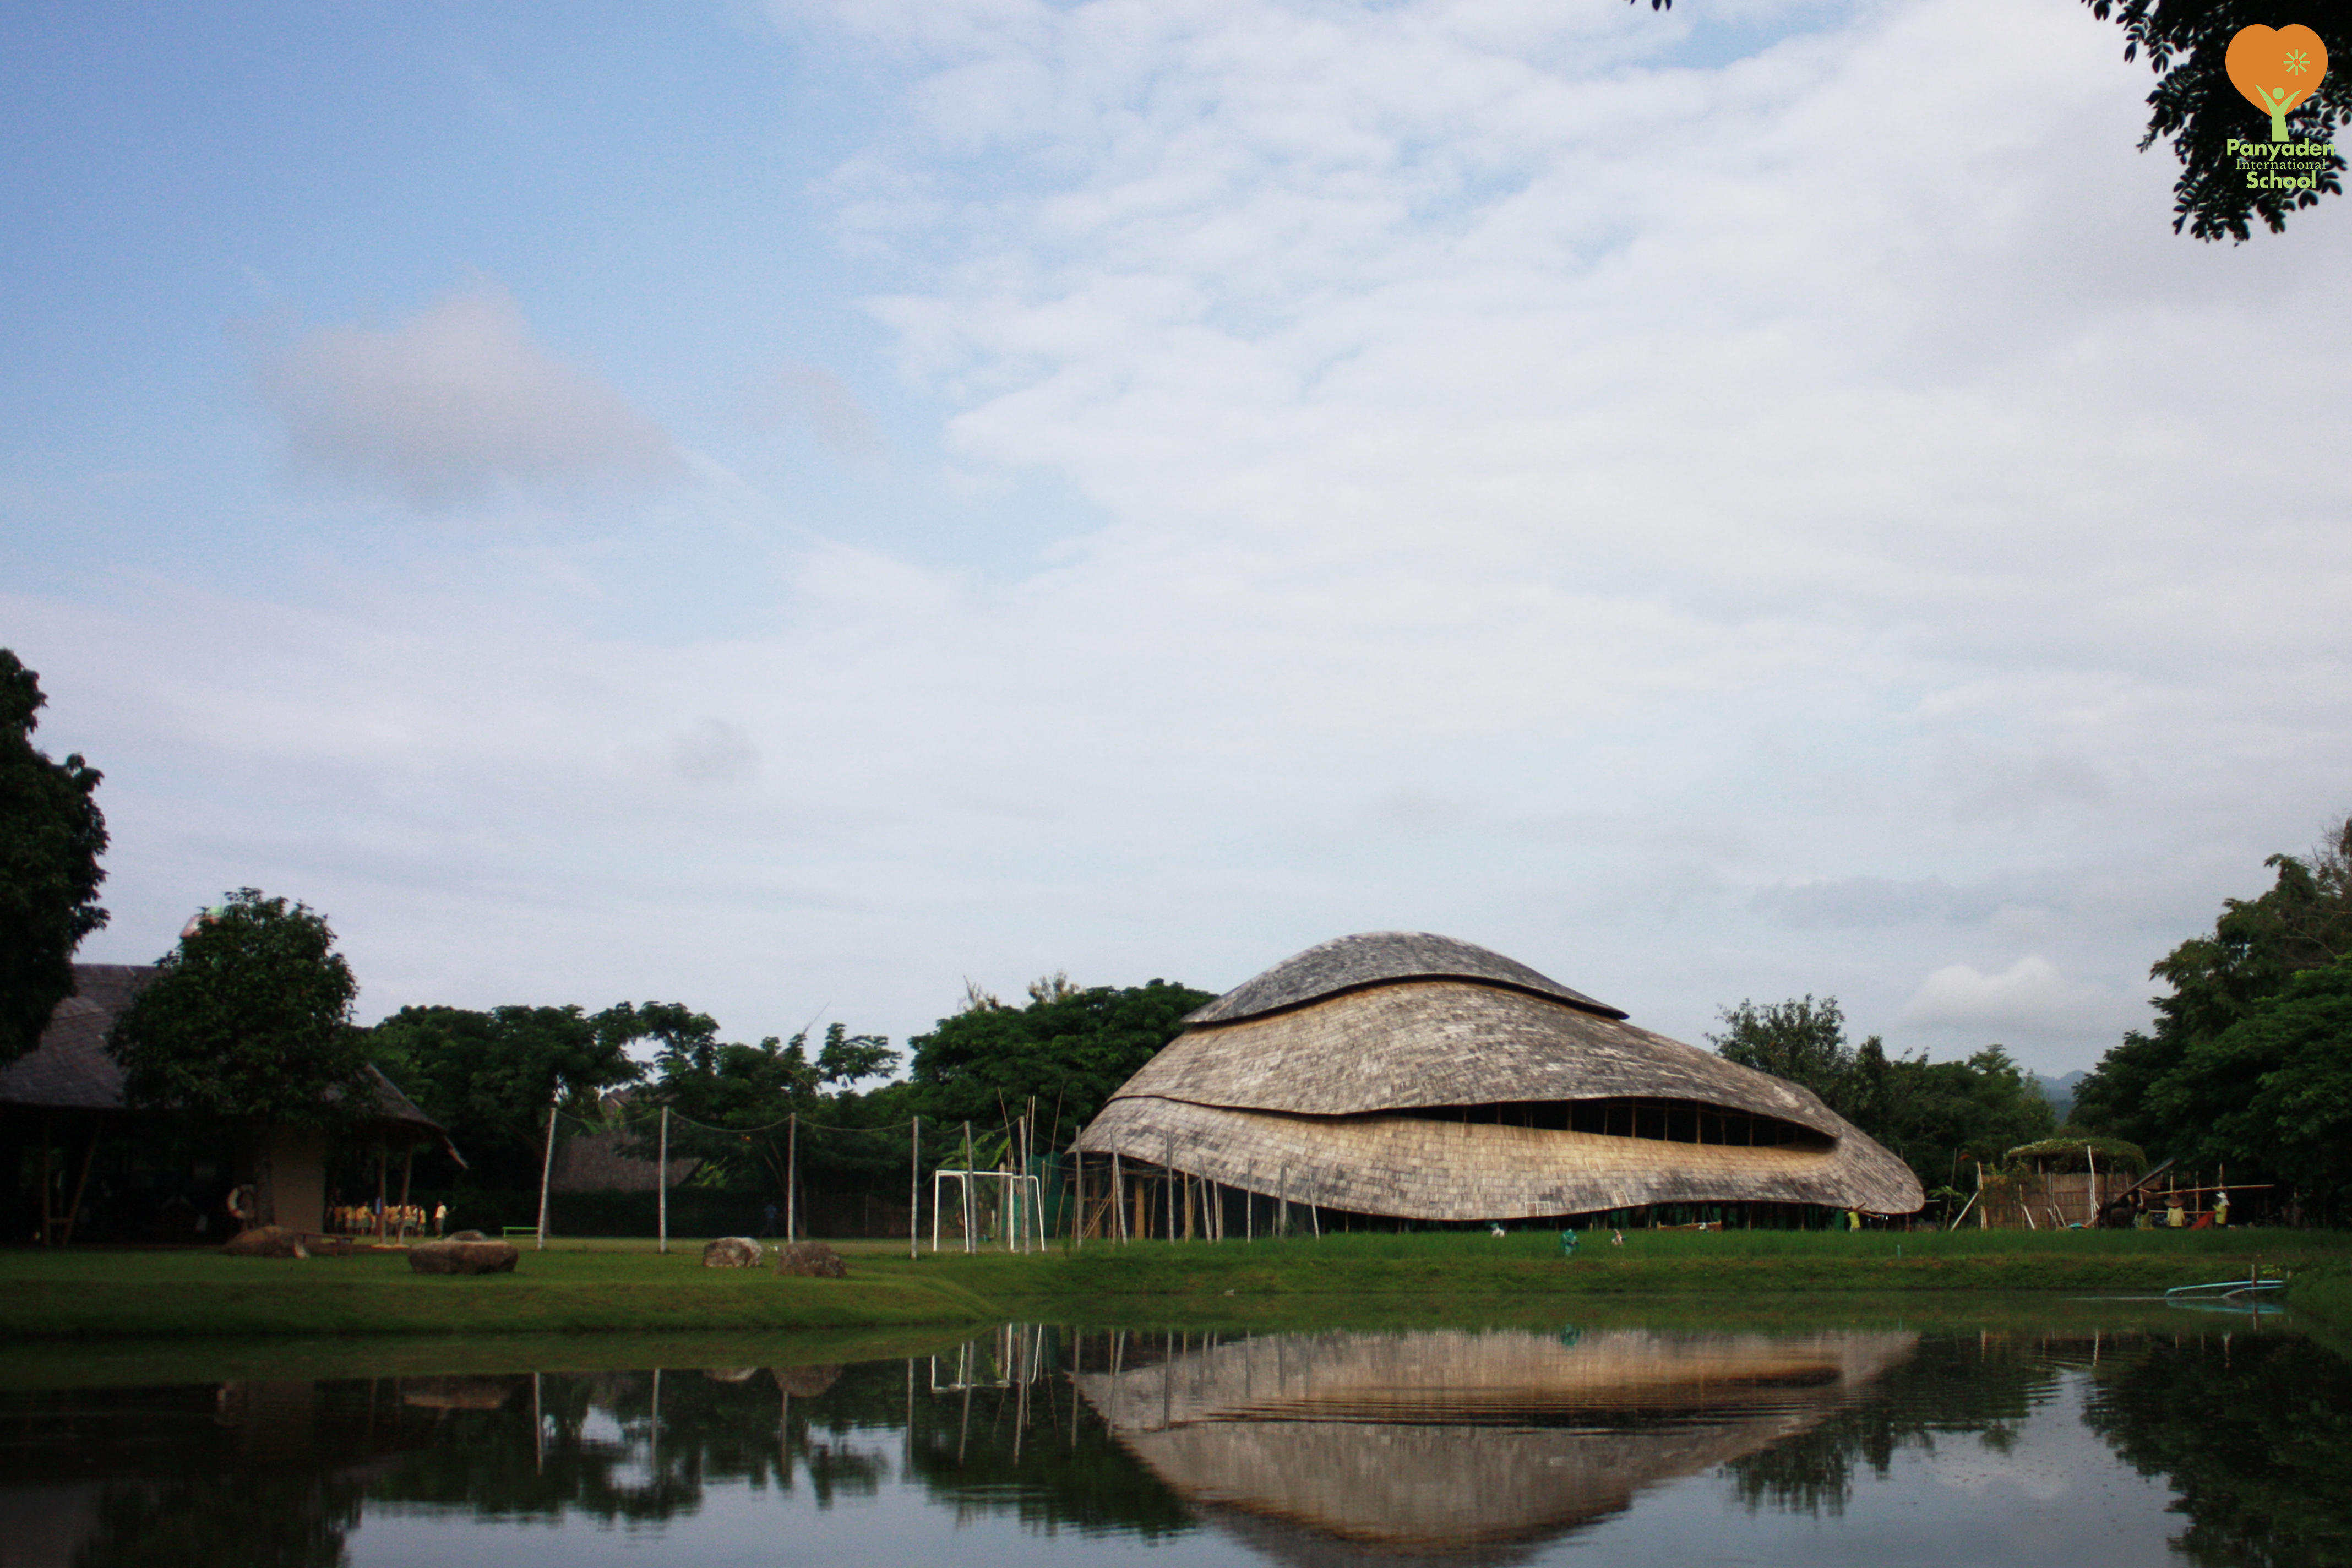 Panyaden's new assembly hall, reflections in the lake